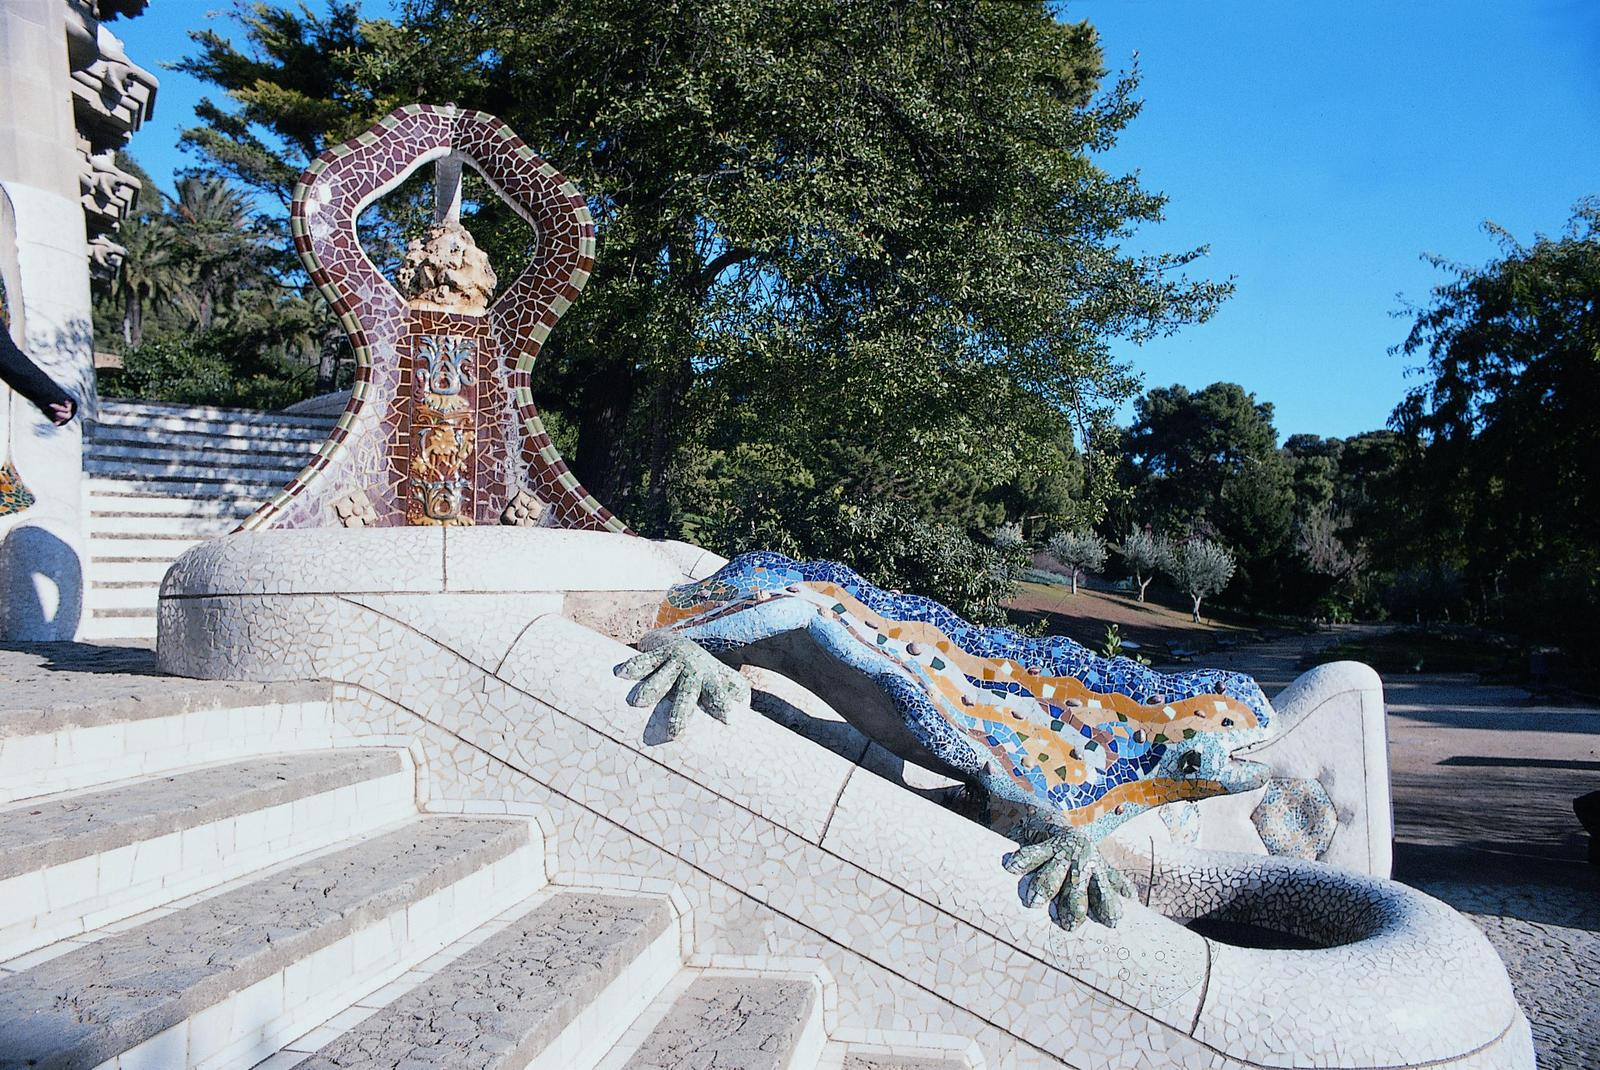 Parque Guell. An Unusual Way to Explore Barcelona